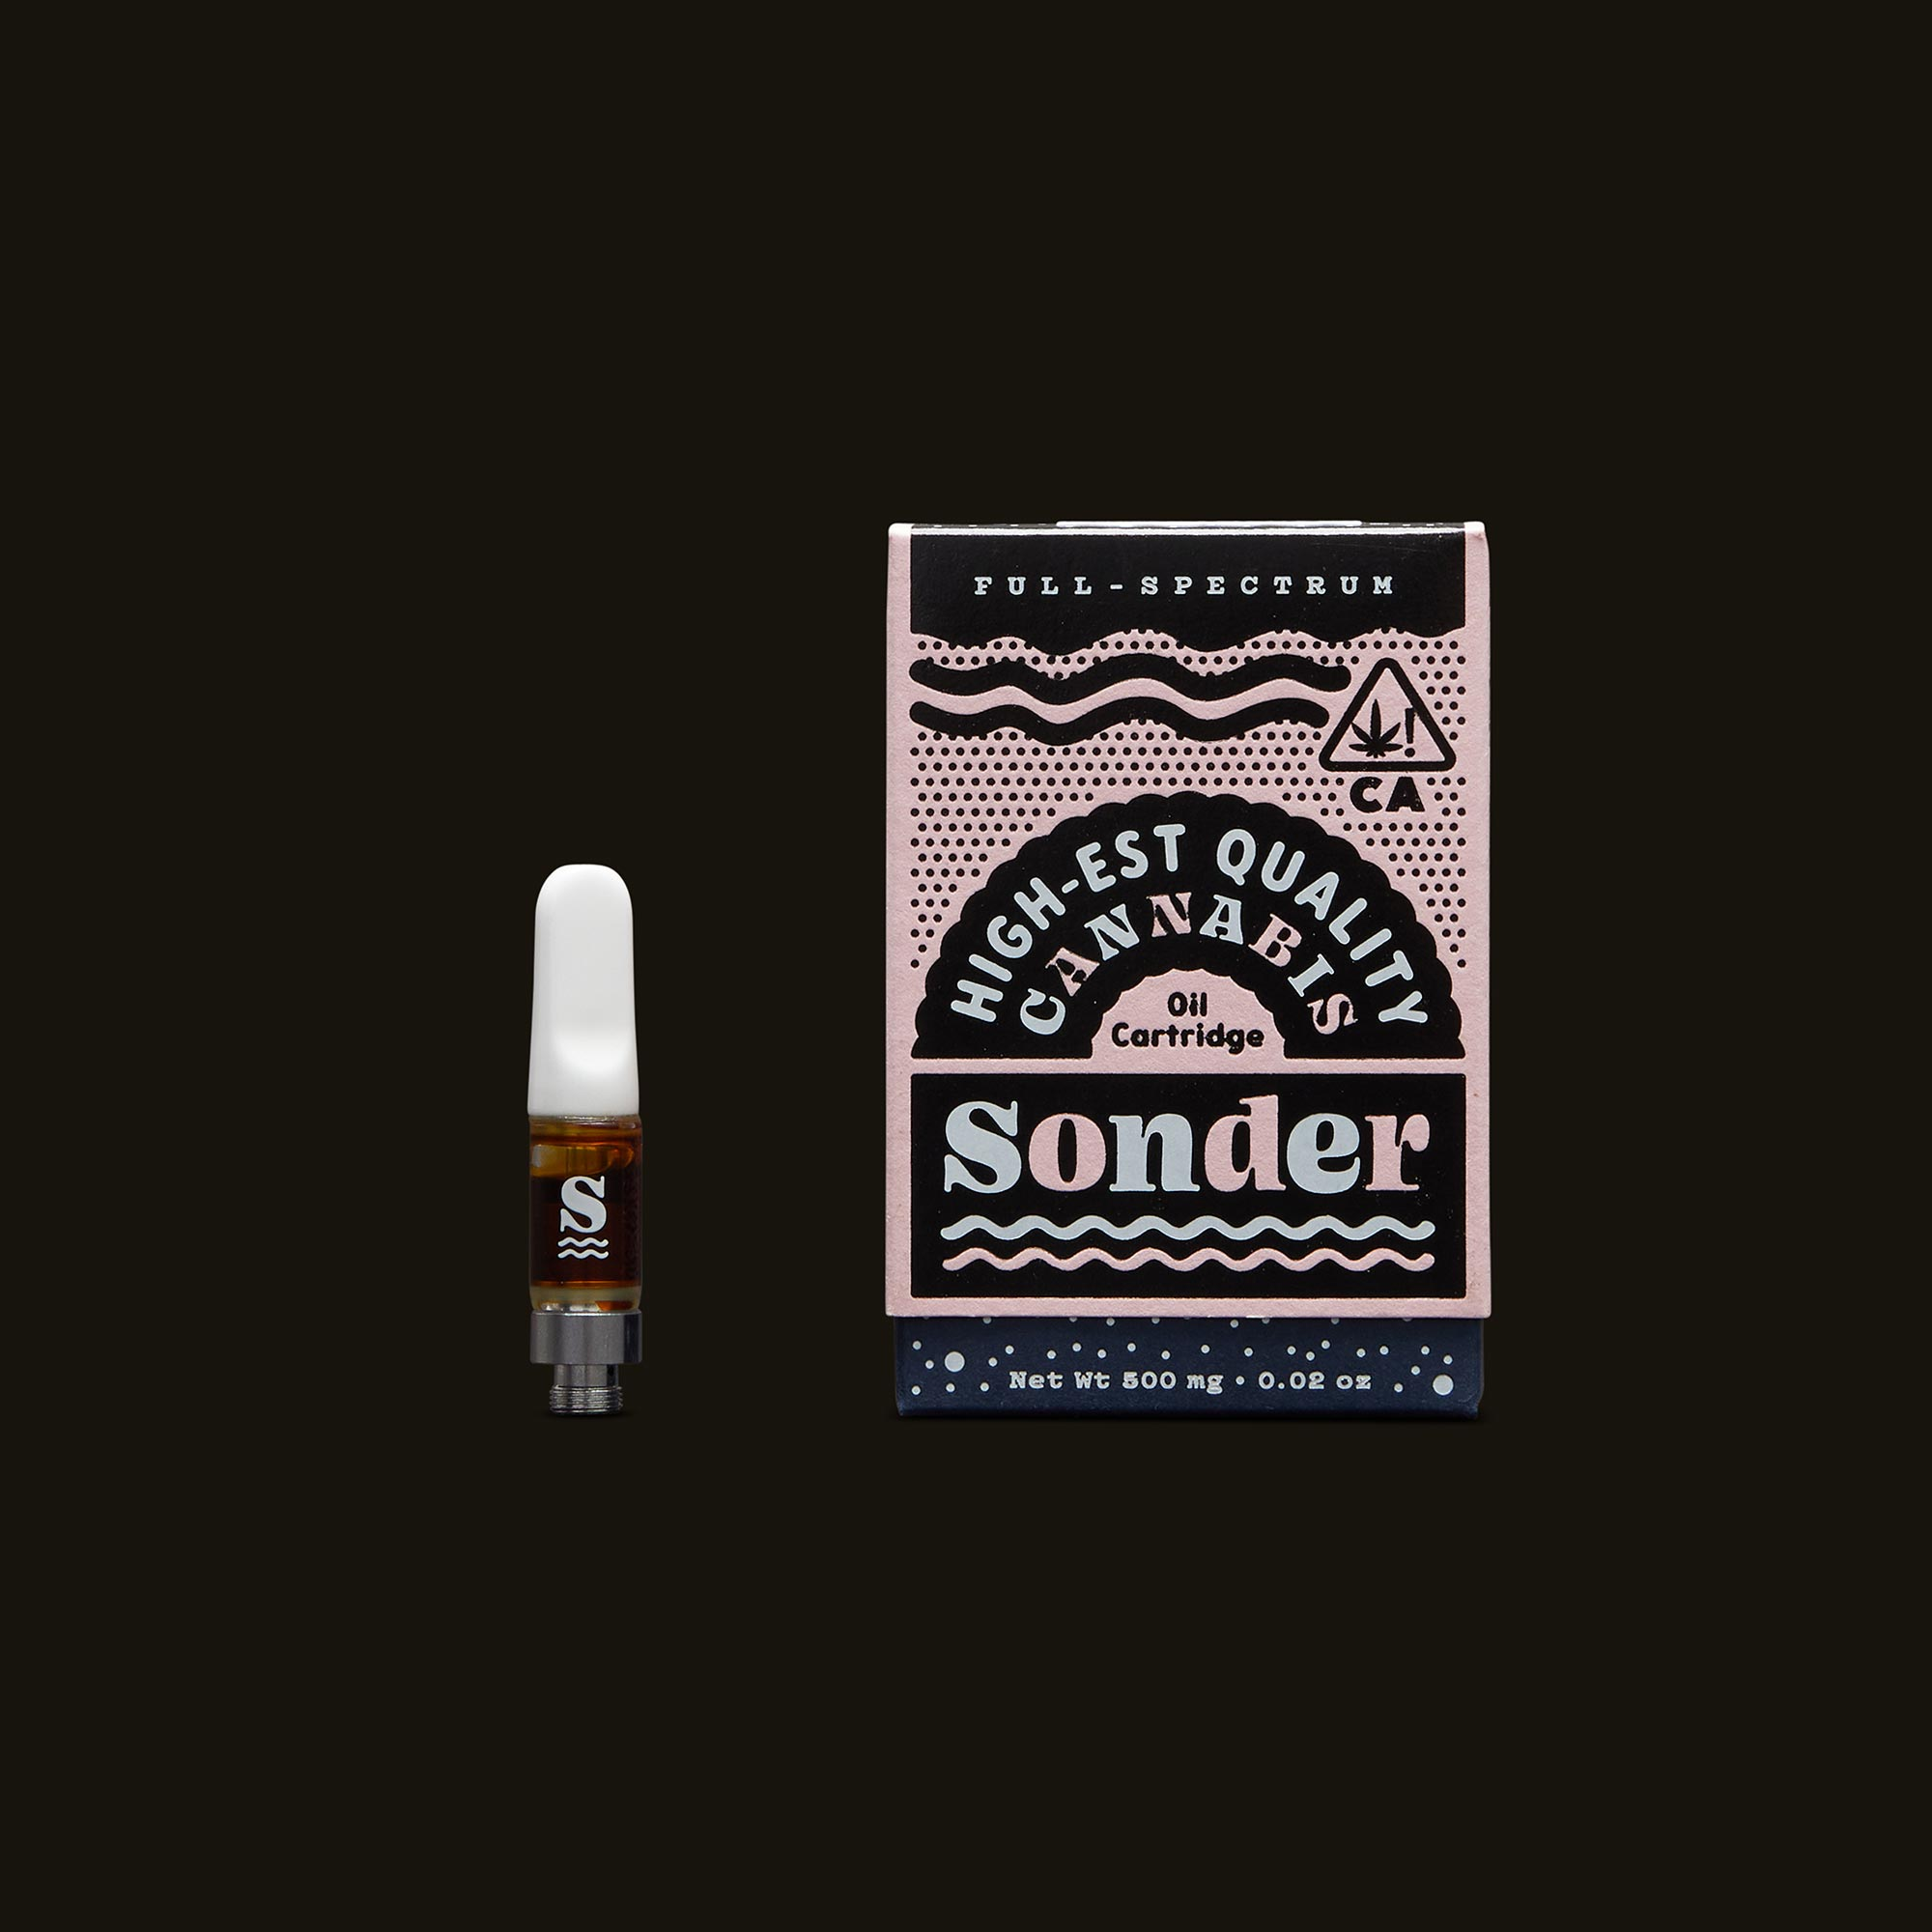 Sonder Blast Off Cartridge